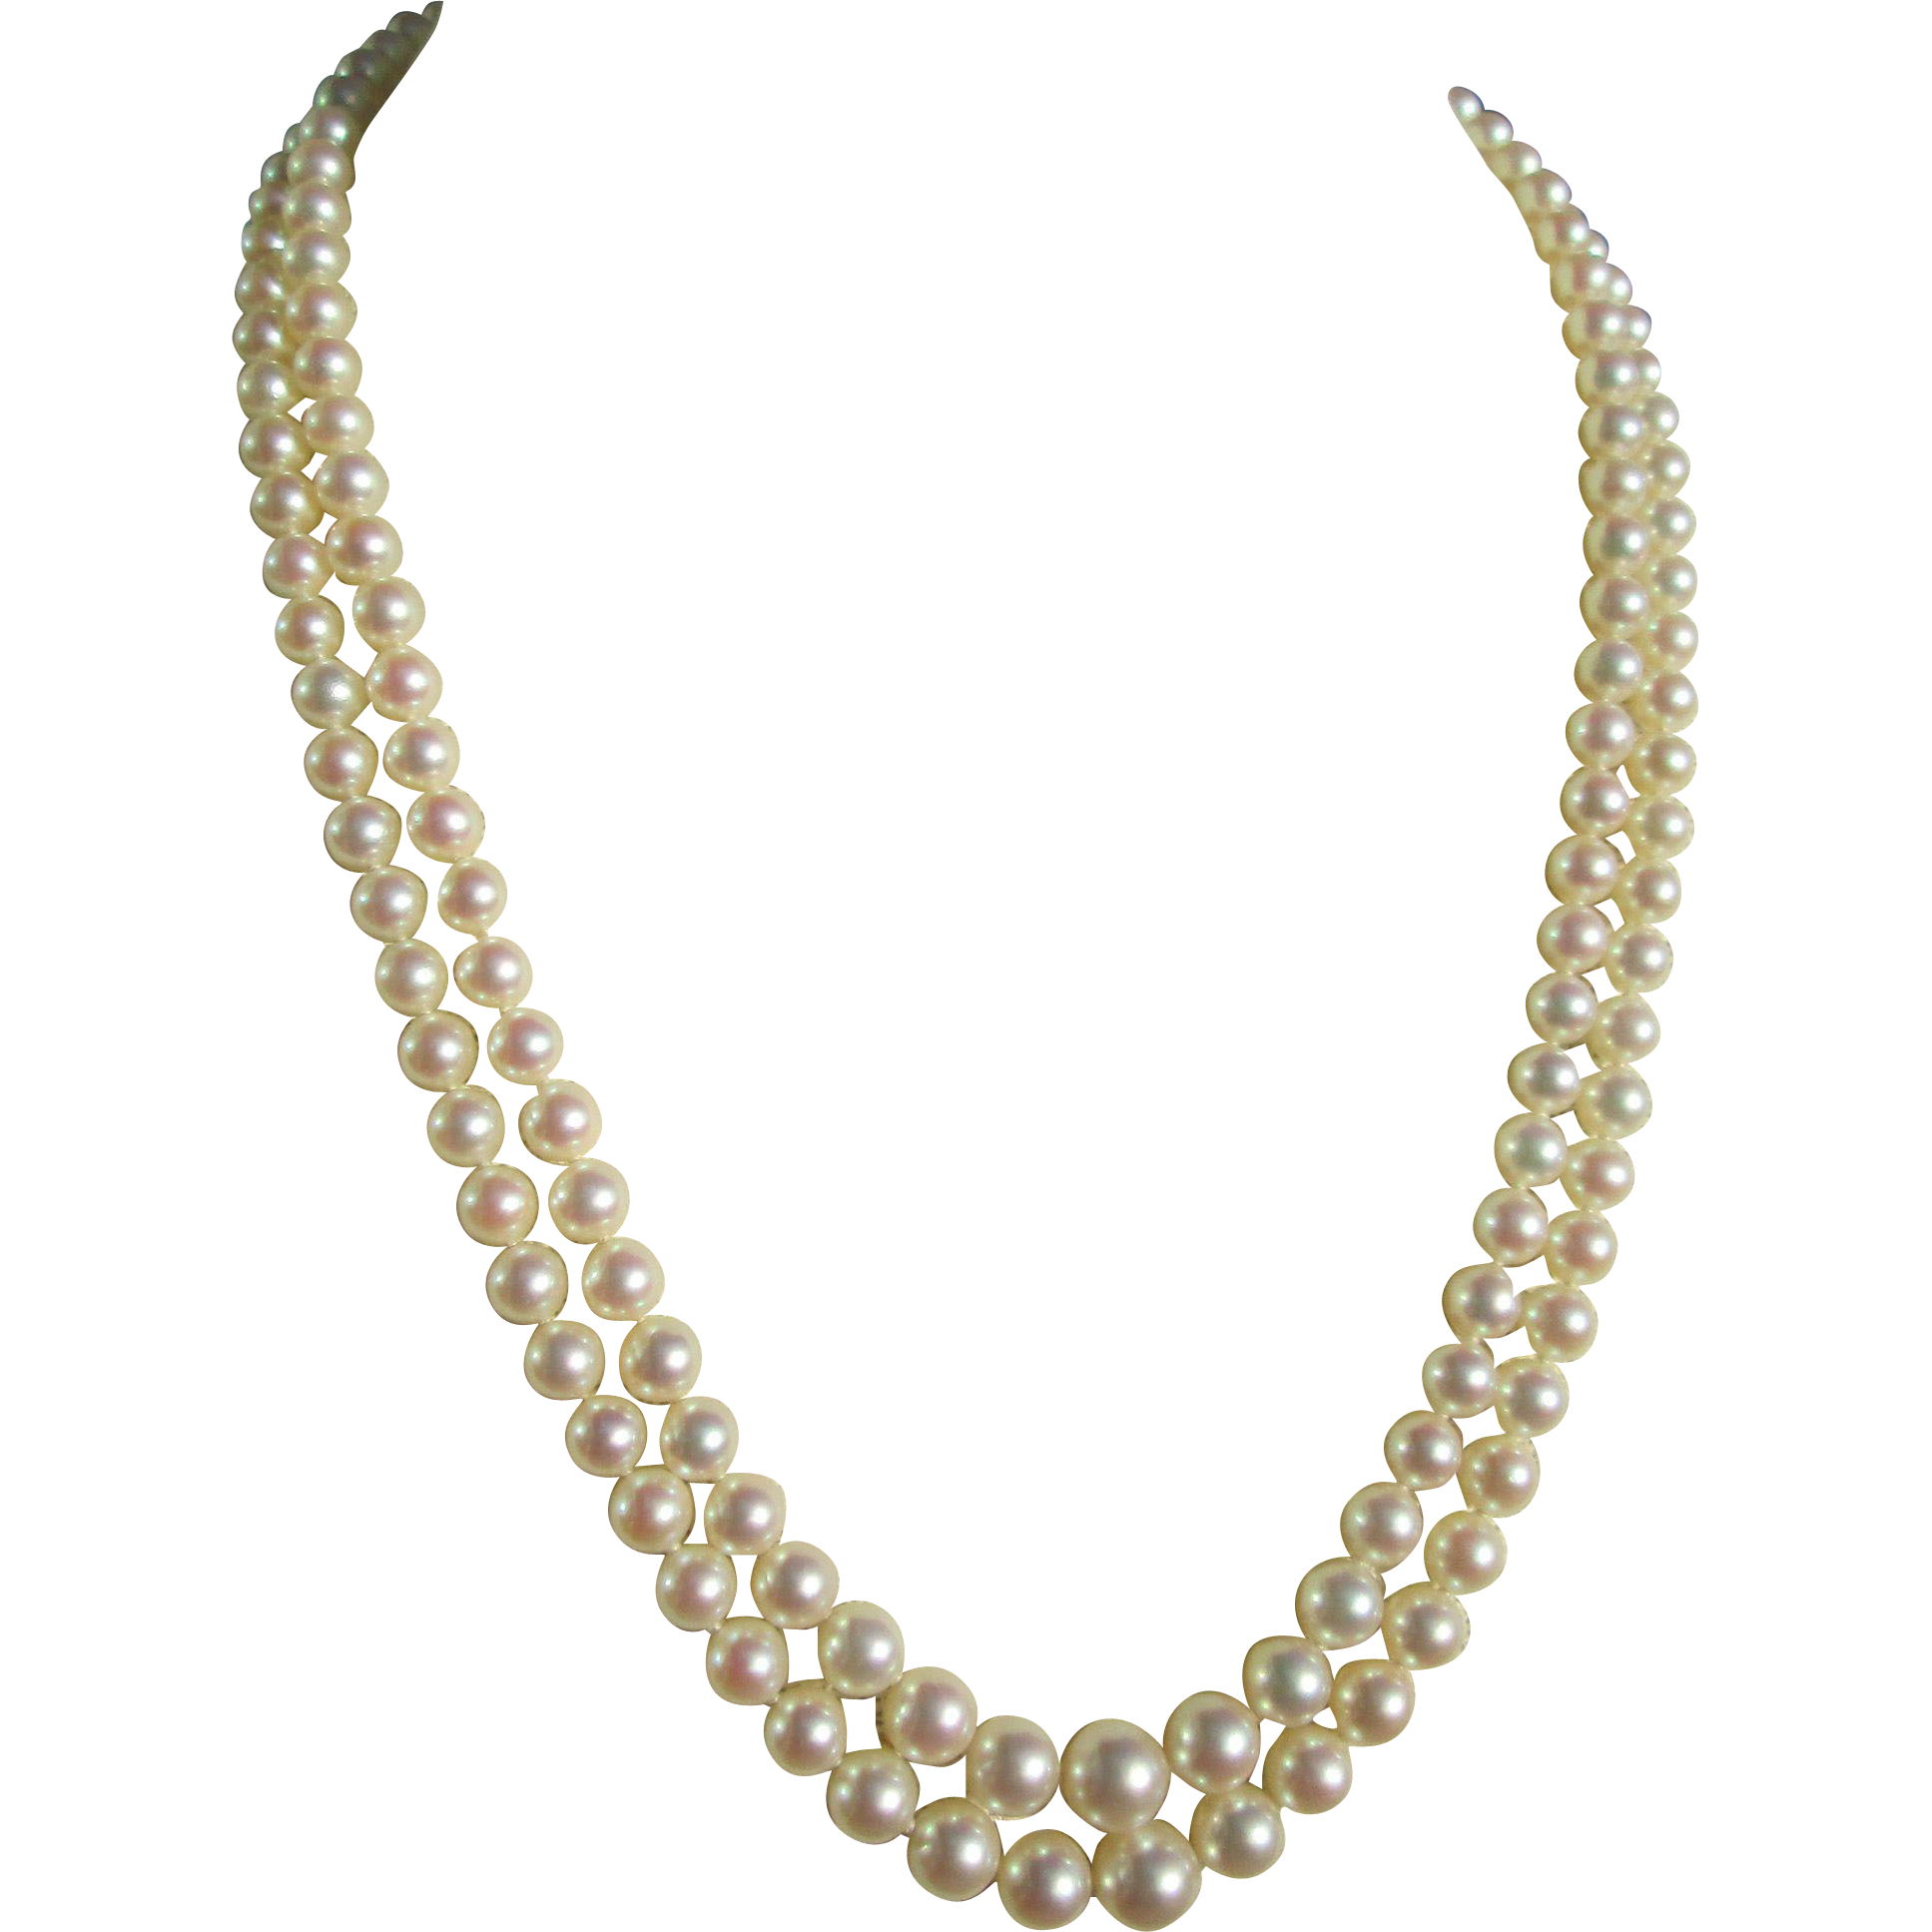 Pearl necklace png. Mikimoto double strand princess